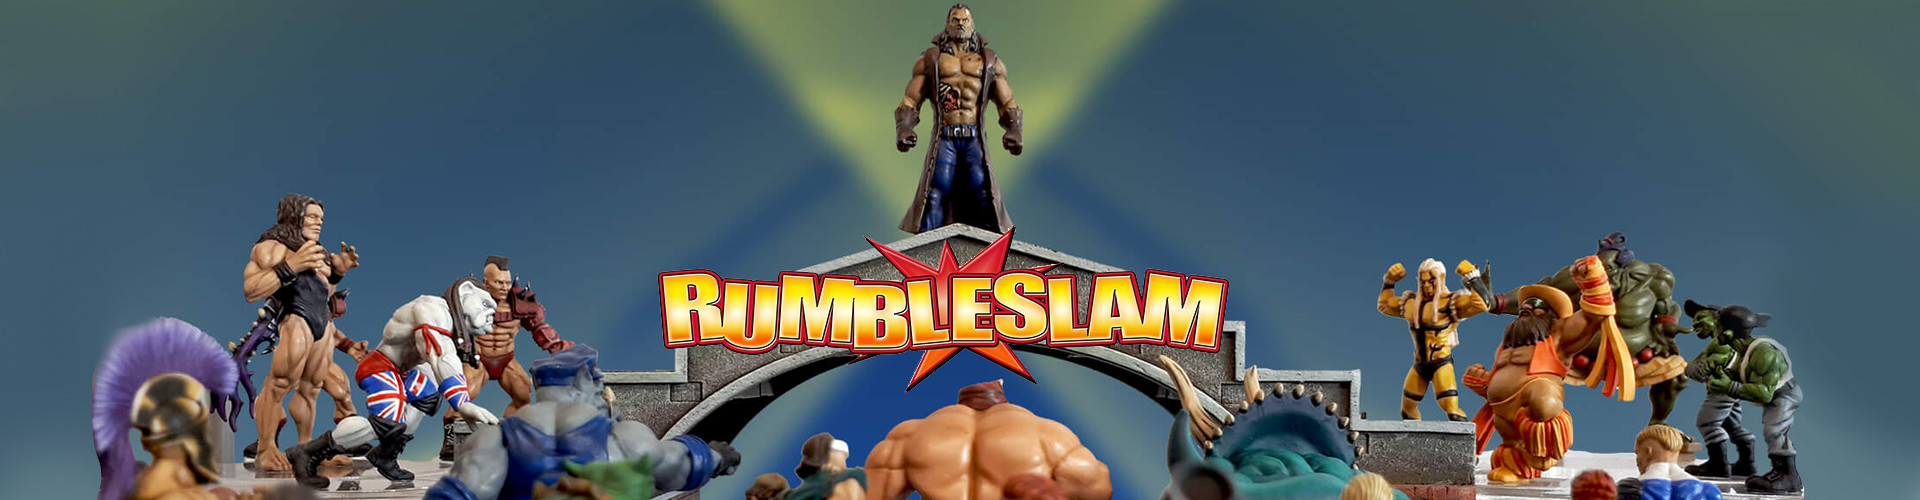 DEMO 14 Rumbleslam - Demospiele: RUMBLESLAM